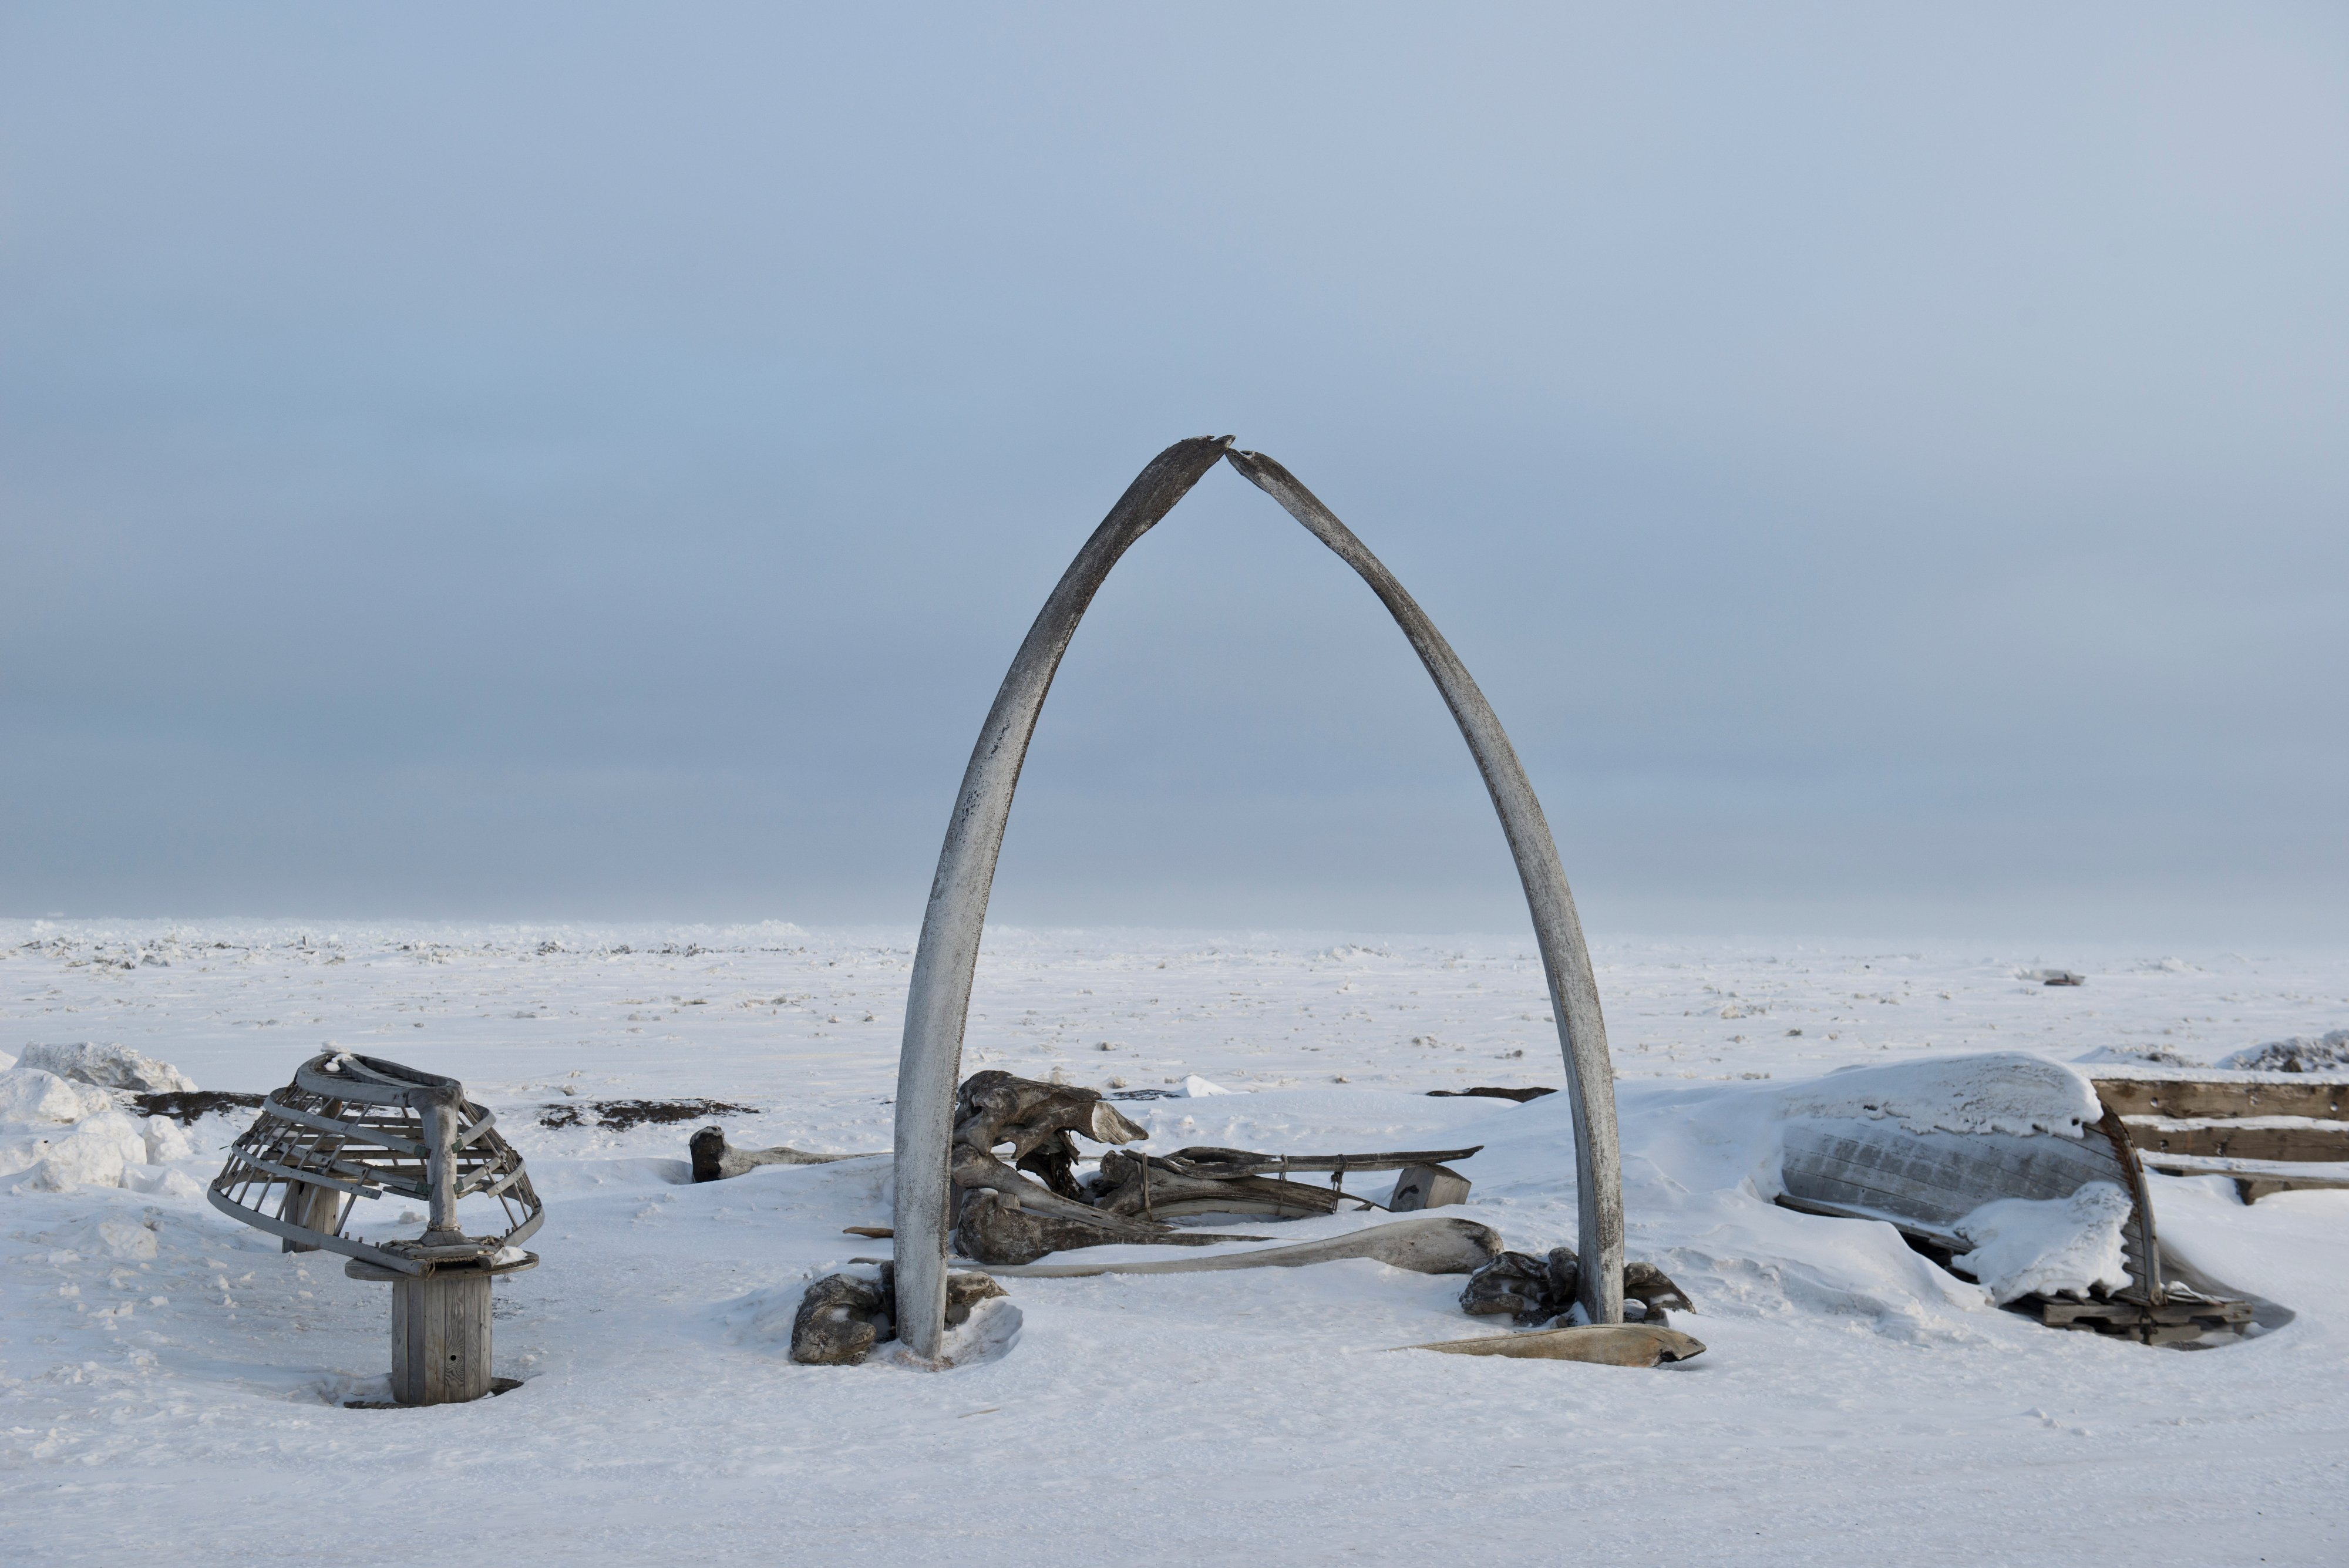 Town formerly known as Barrow already in court over new name of Utqiaġvik